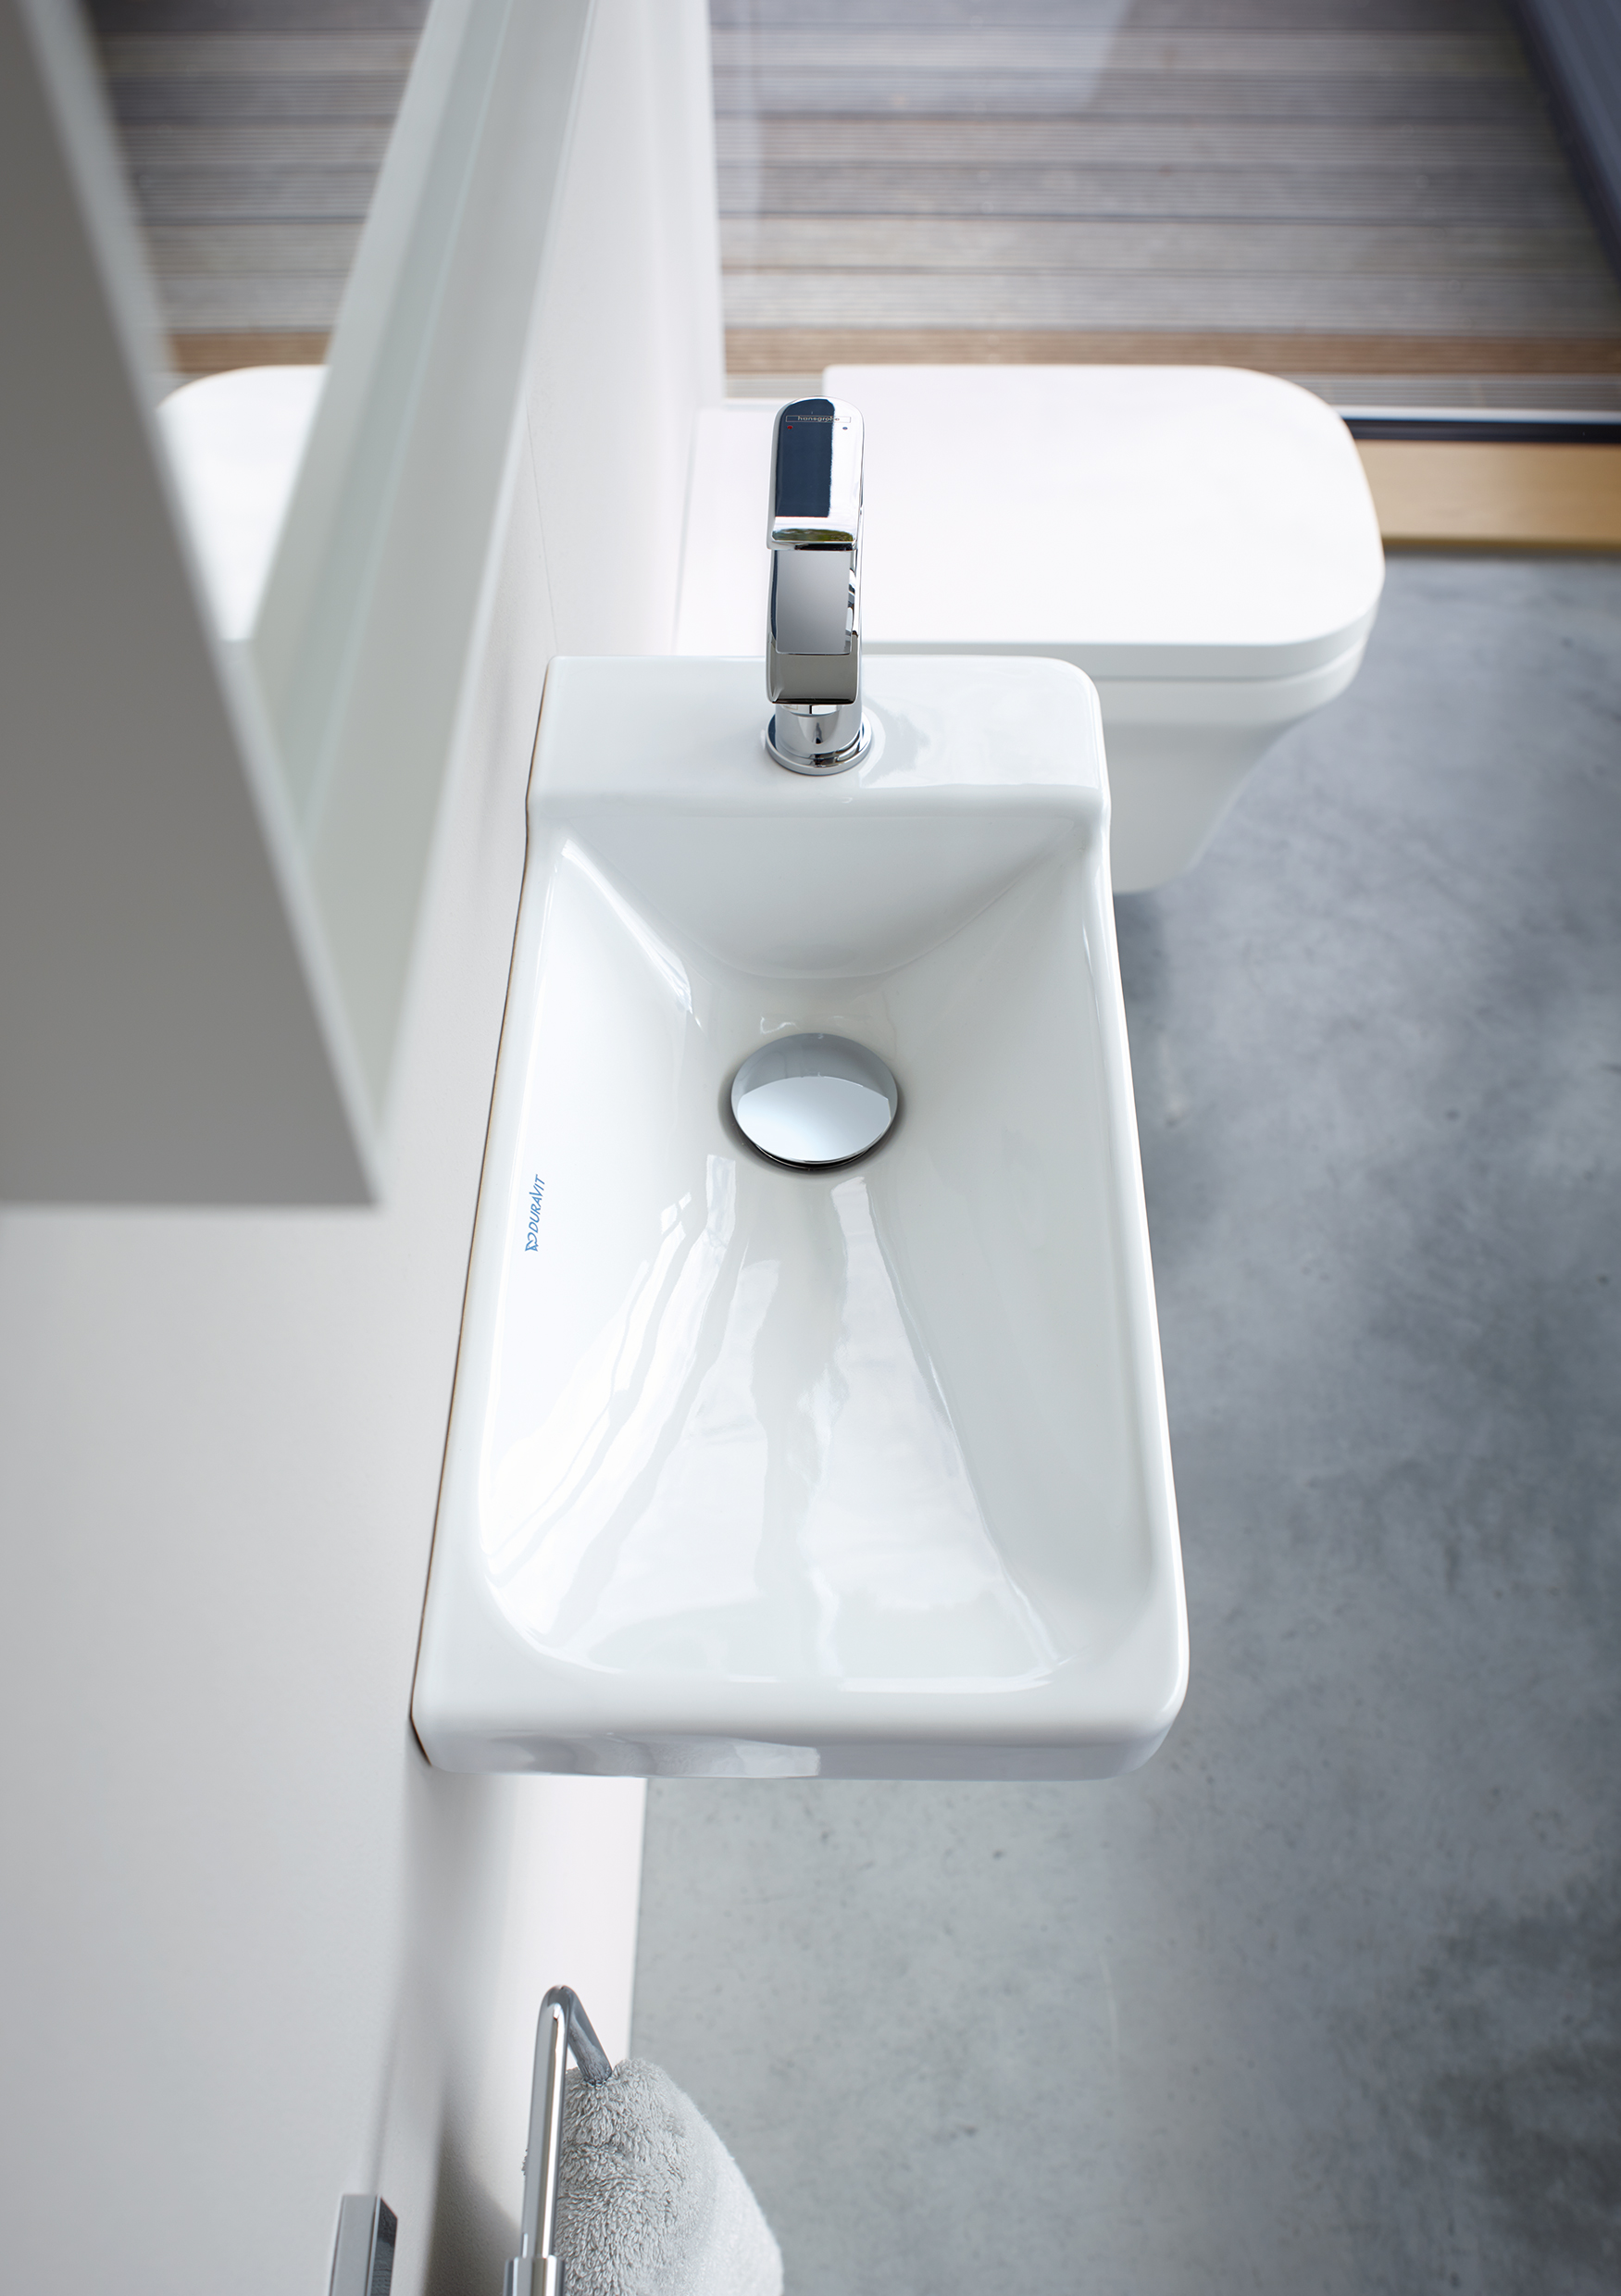 Compact bathrooms can equal design sensations with Duravit